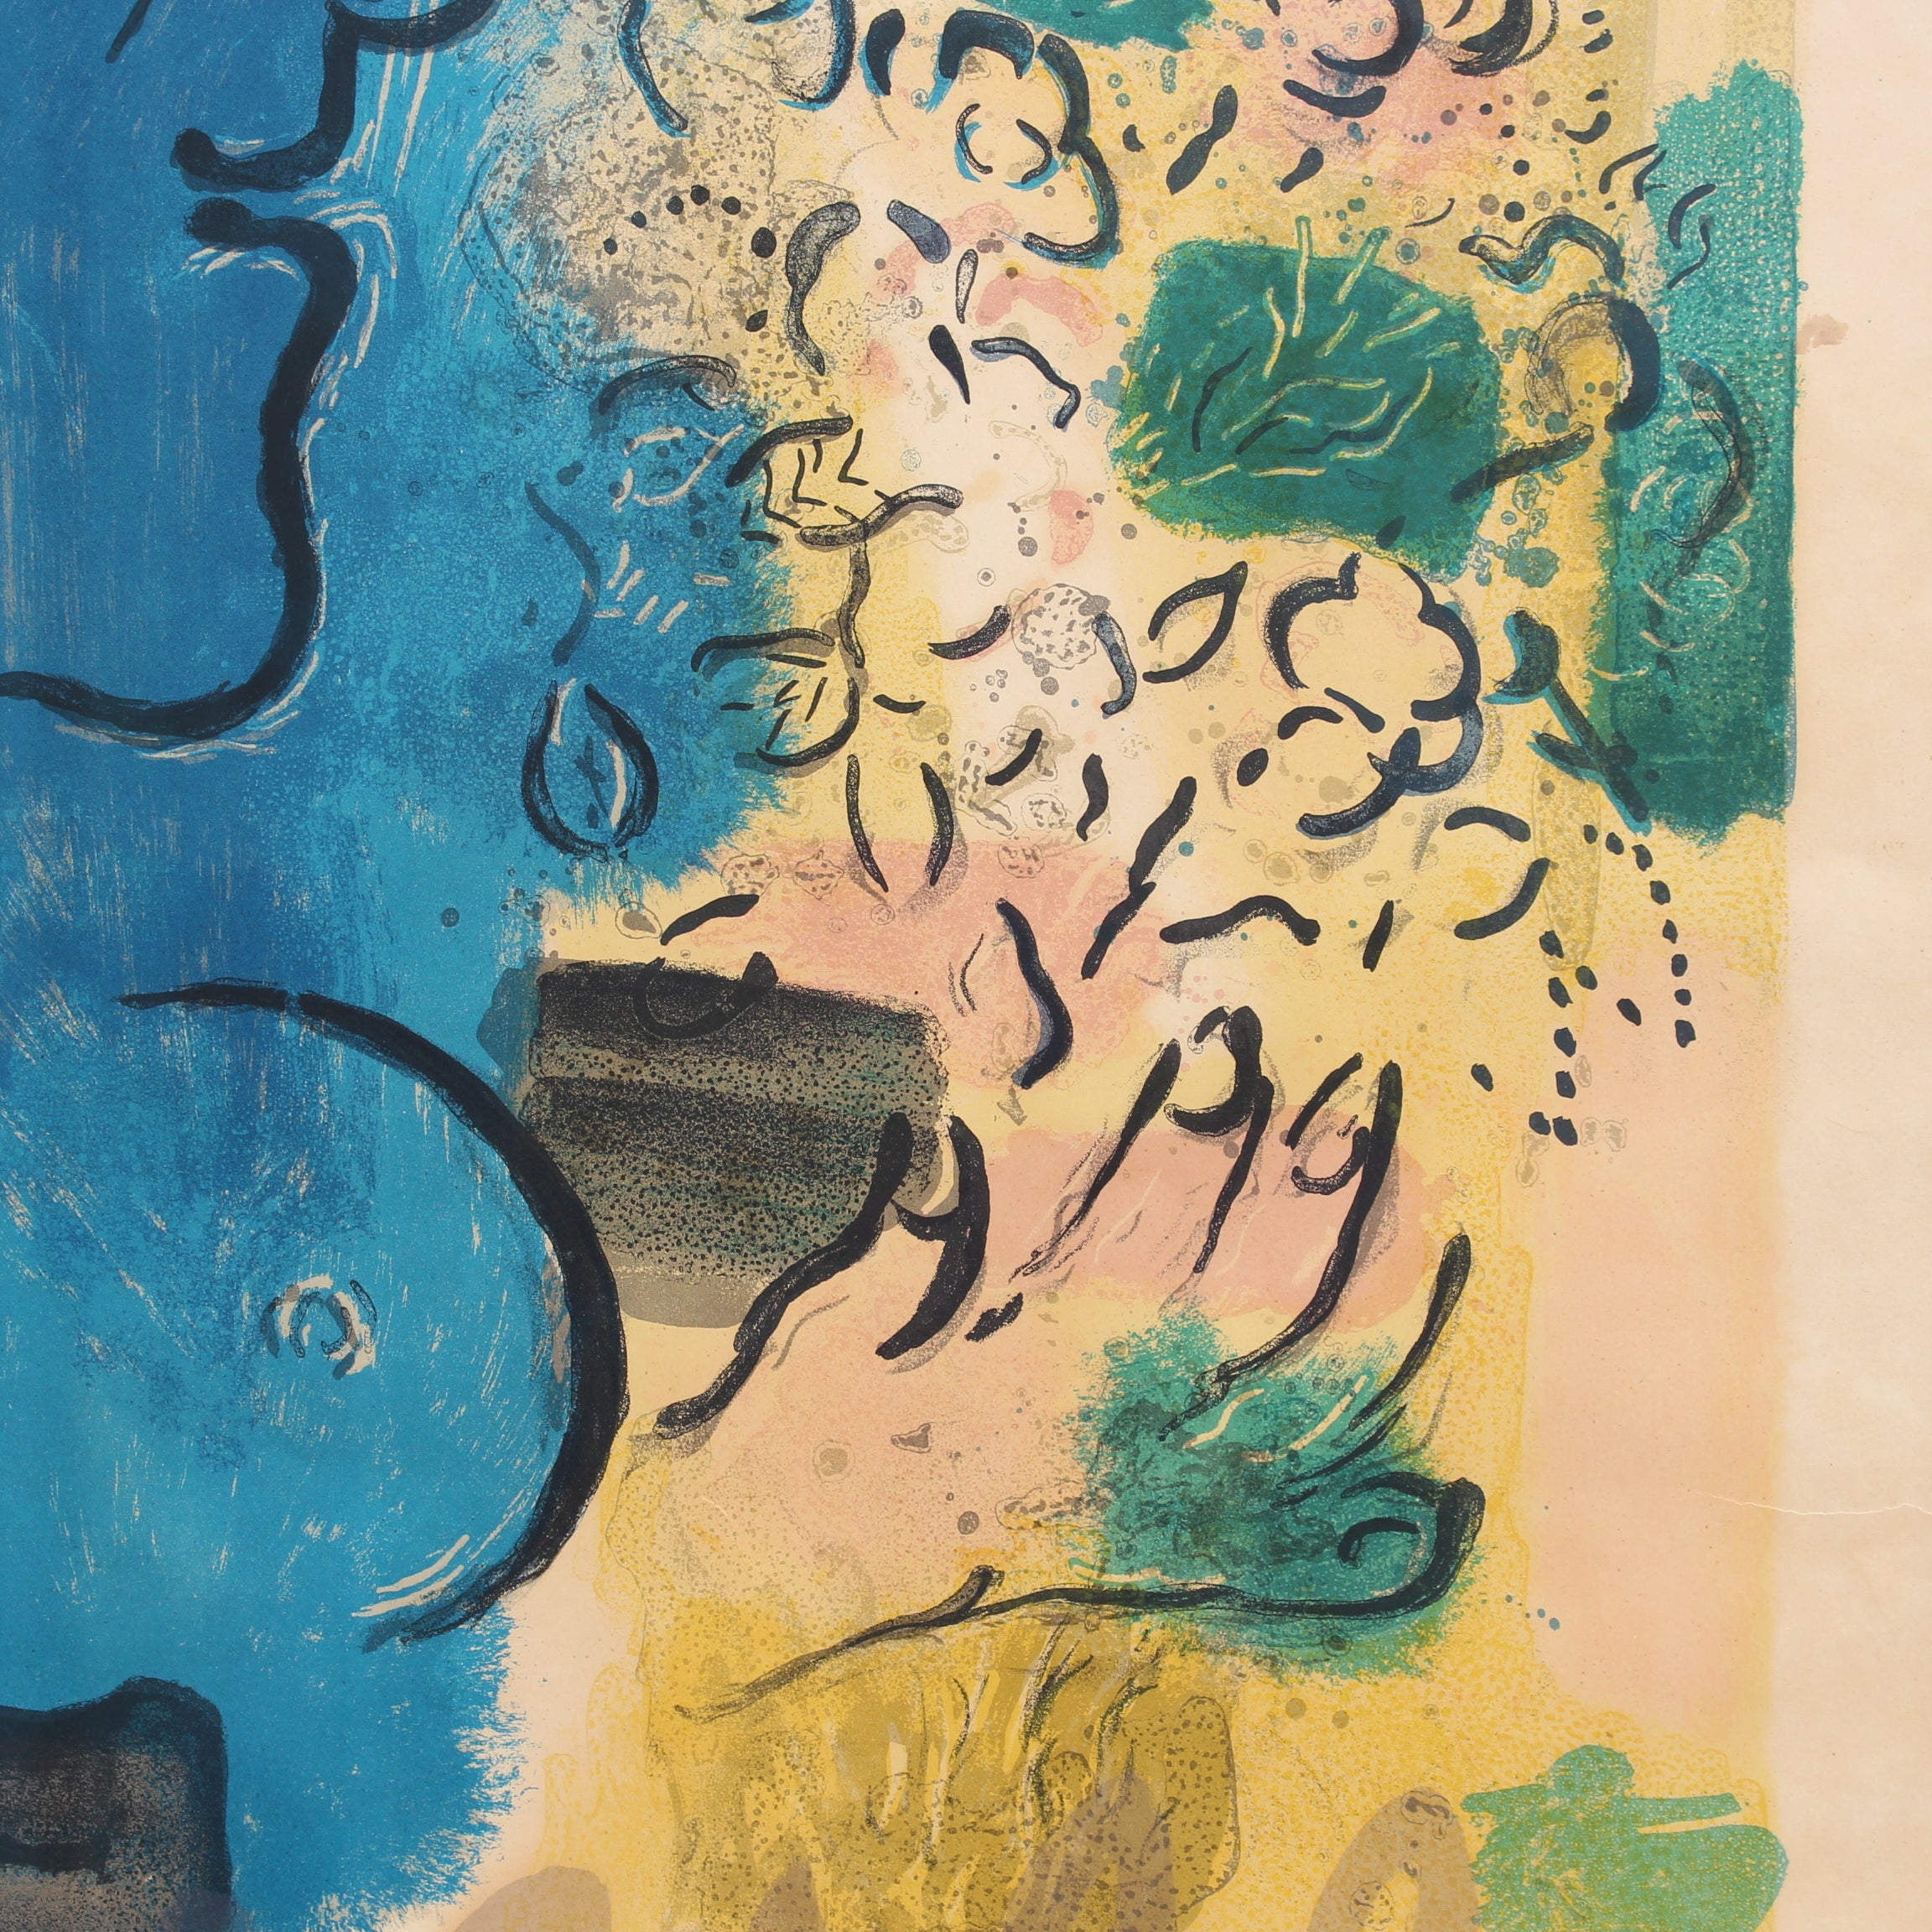 'Blue Profile' Lithograph Poster by Marc Chagall with Original Signature (1967)